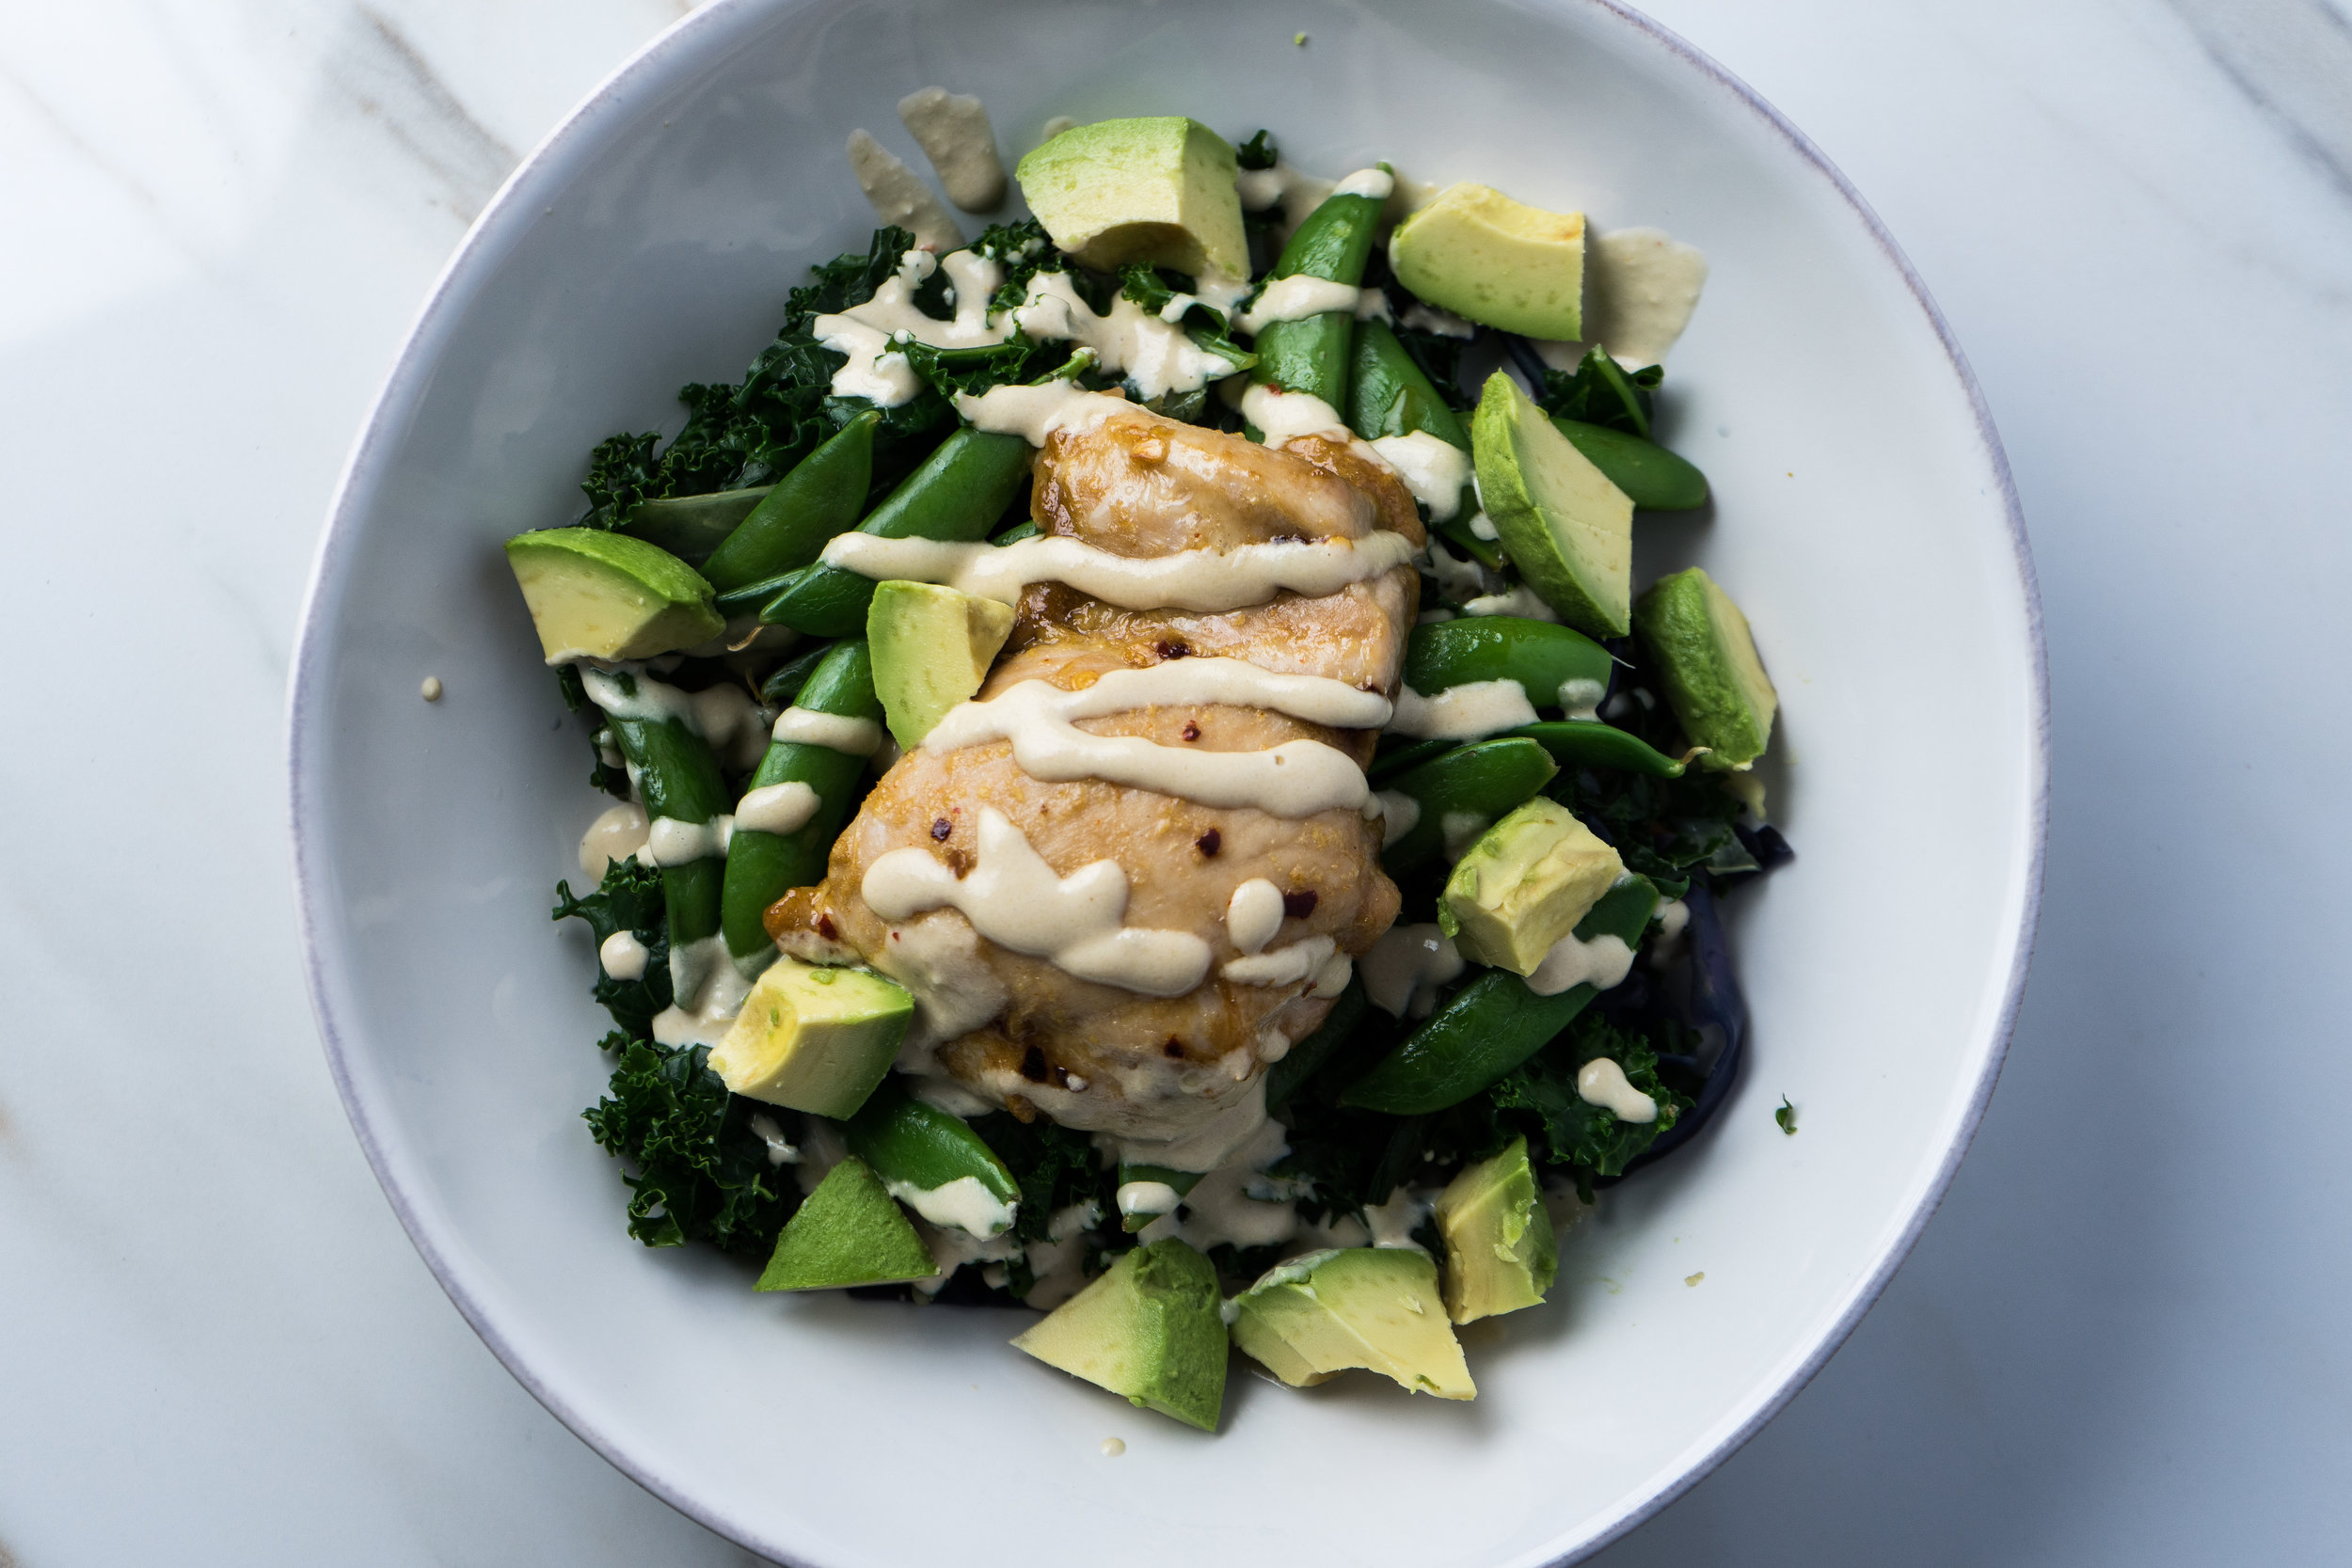 Steamed curly kale, sautéed snap peas, baked asian chicken, avocado and miso tahini drizzle.